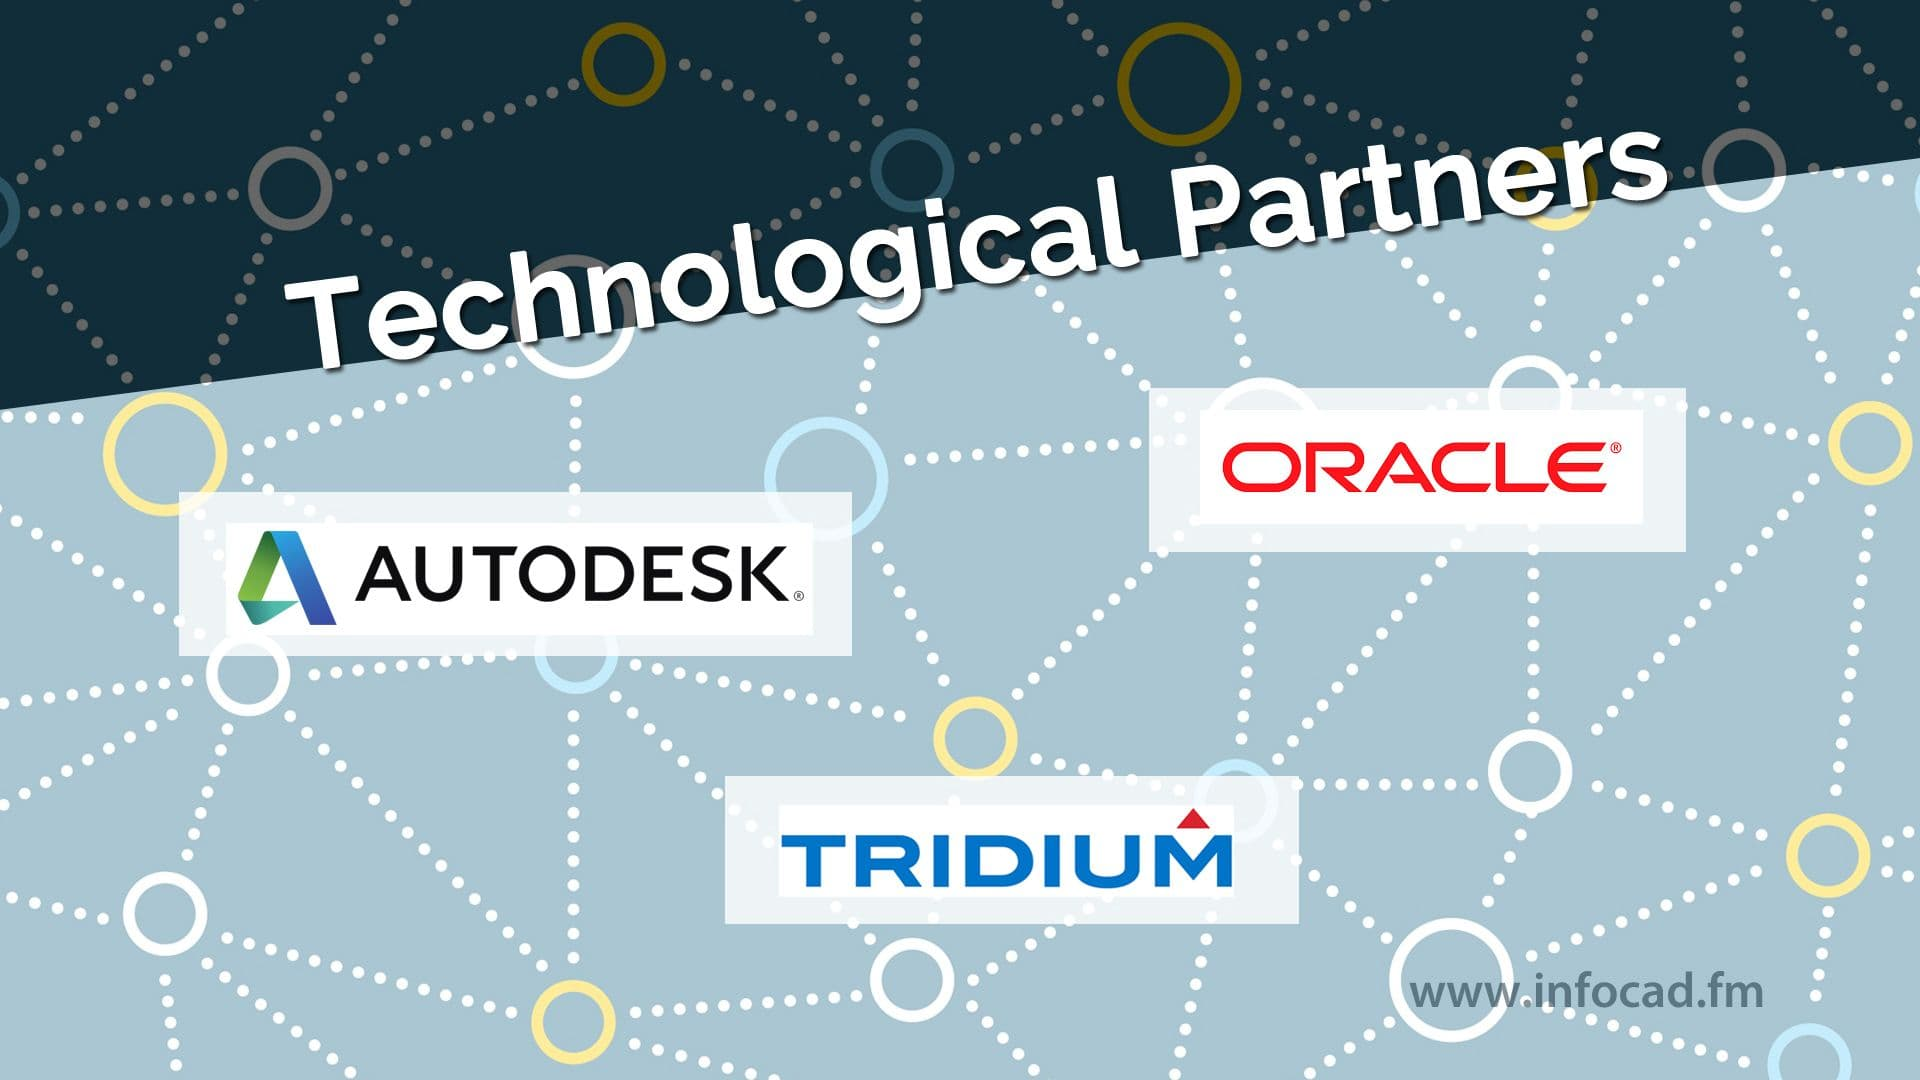 Technological Partners